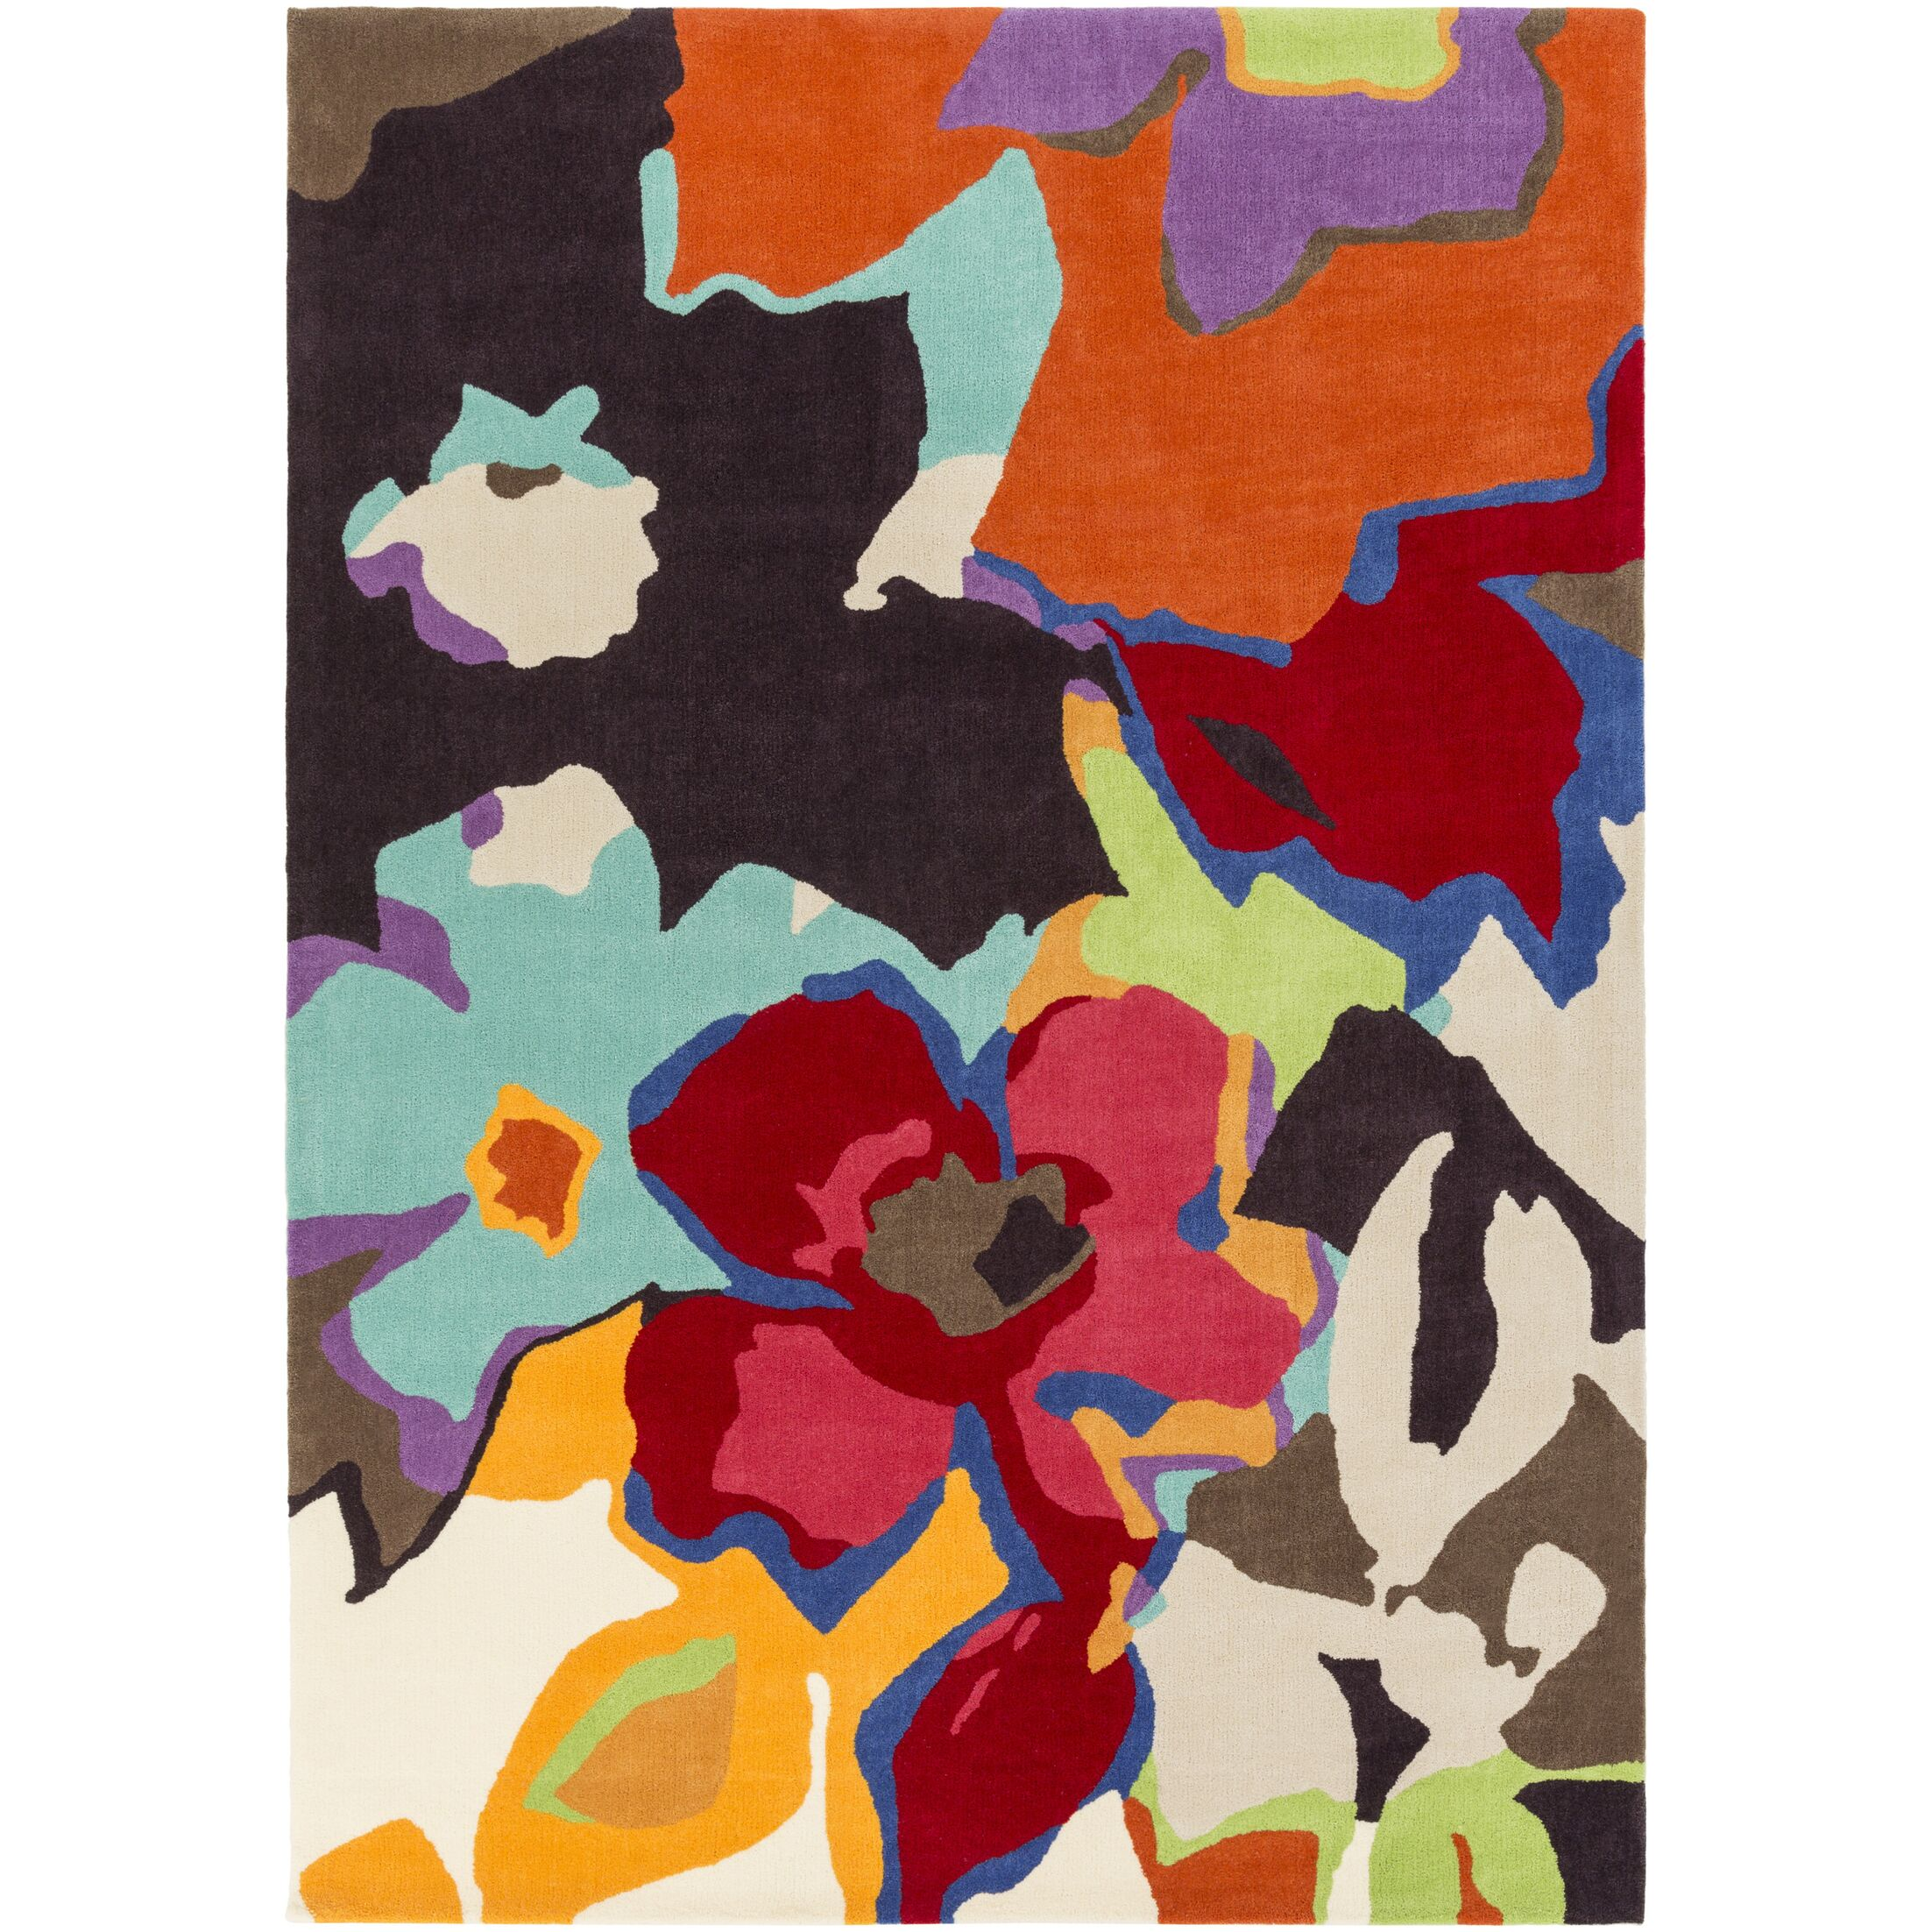 Aero Hand-Tufted Floral and Paisley Area Rug Rug Size: Rectangle 5' x 7'6